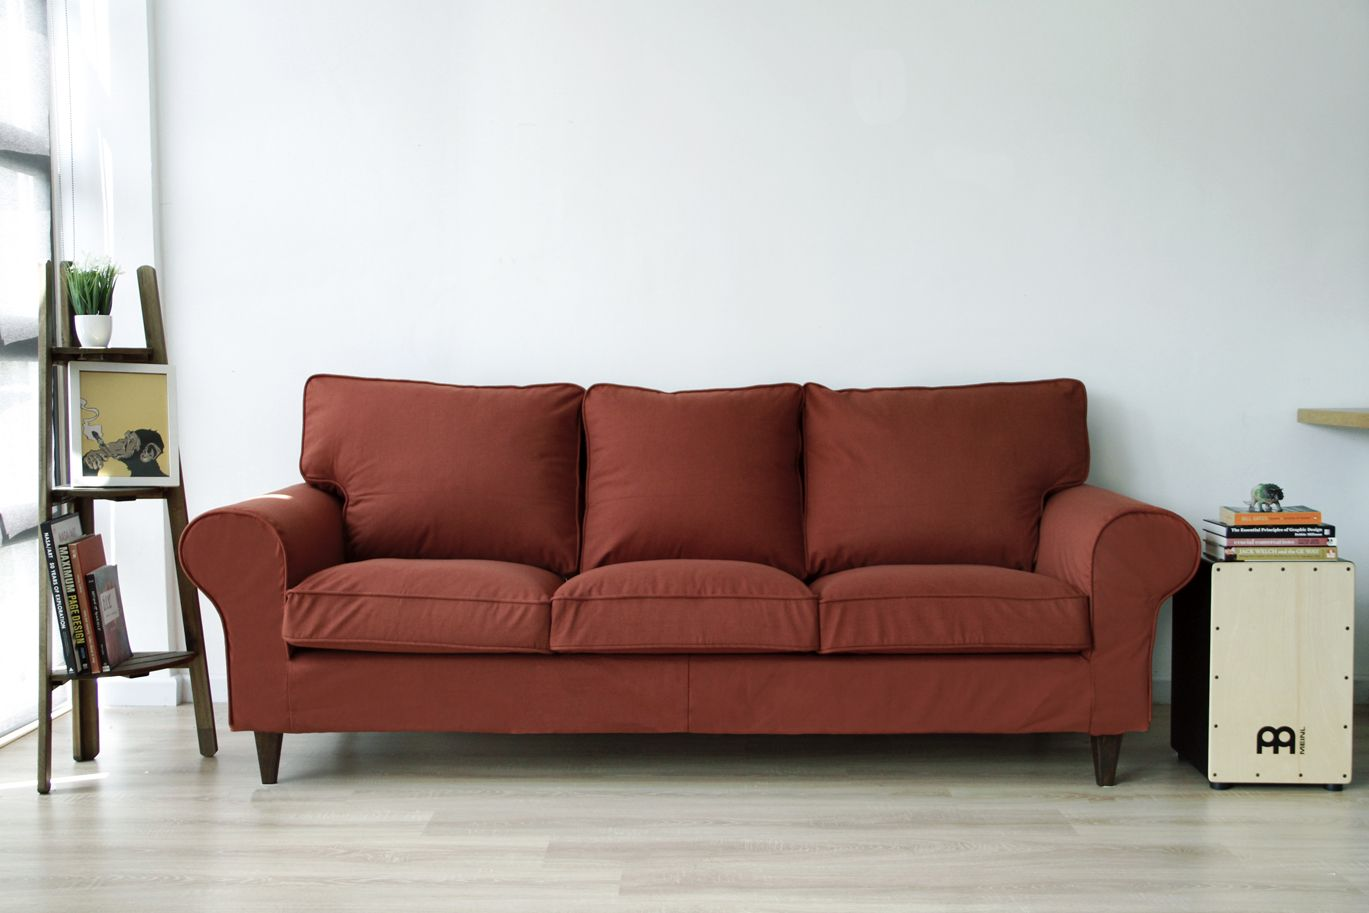 Merveilleux Rust Red Woollen Snug Fit Tailored Sofa Covers Made By Comfort Works, On An  IKEA Ektorp 3 Seater Sofa, With Replacement Custom Stained Walker Wooden  Sofa ...